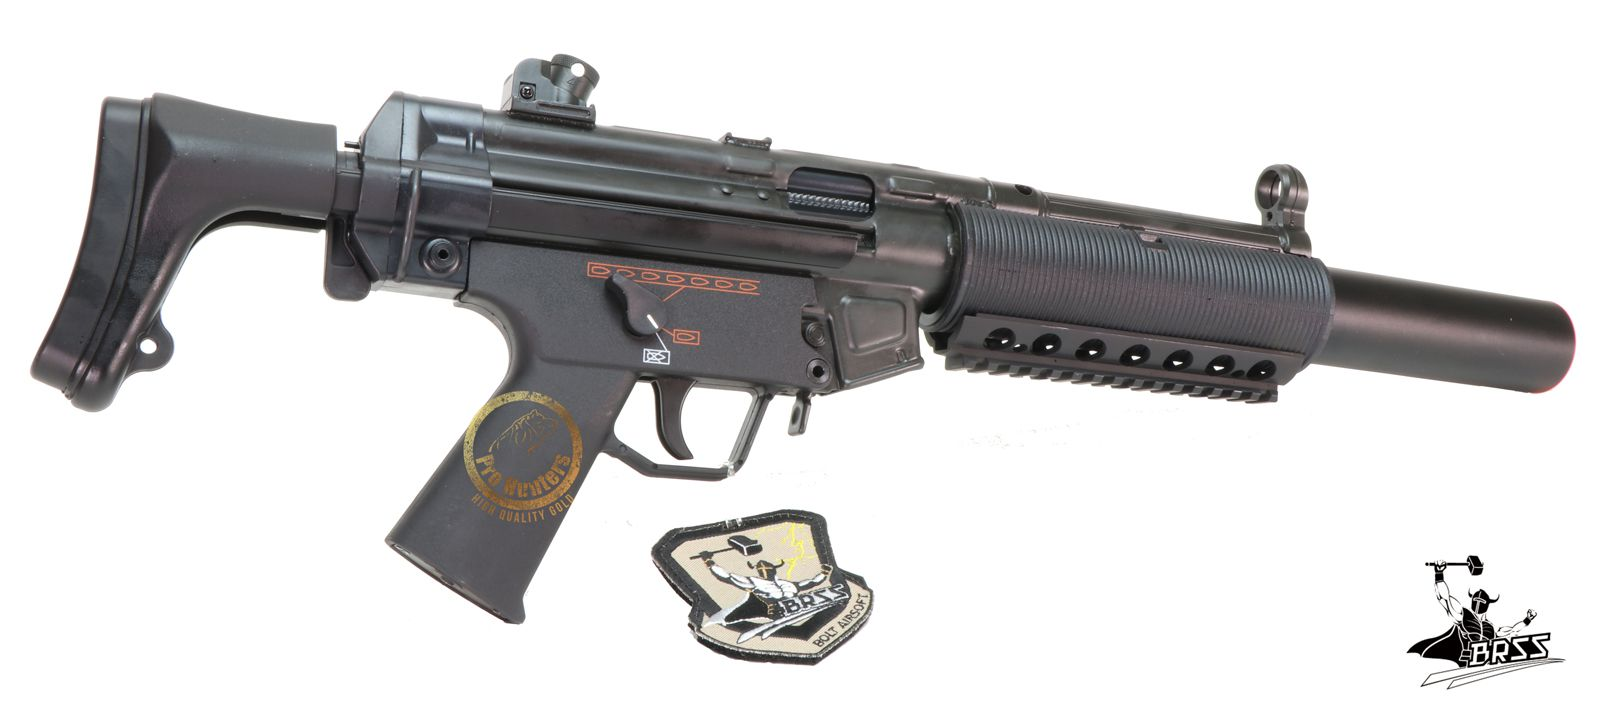 Rifle Airsoft MP5 BOLT SWAT SD6 -Full Metal - Blowback & Recoil System